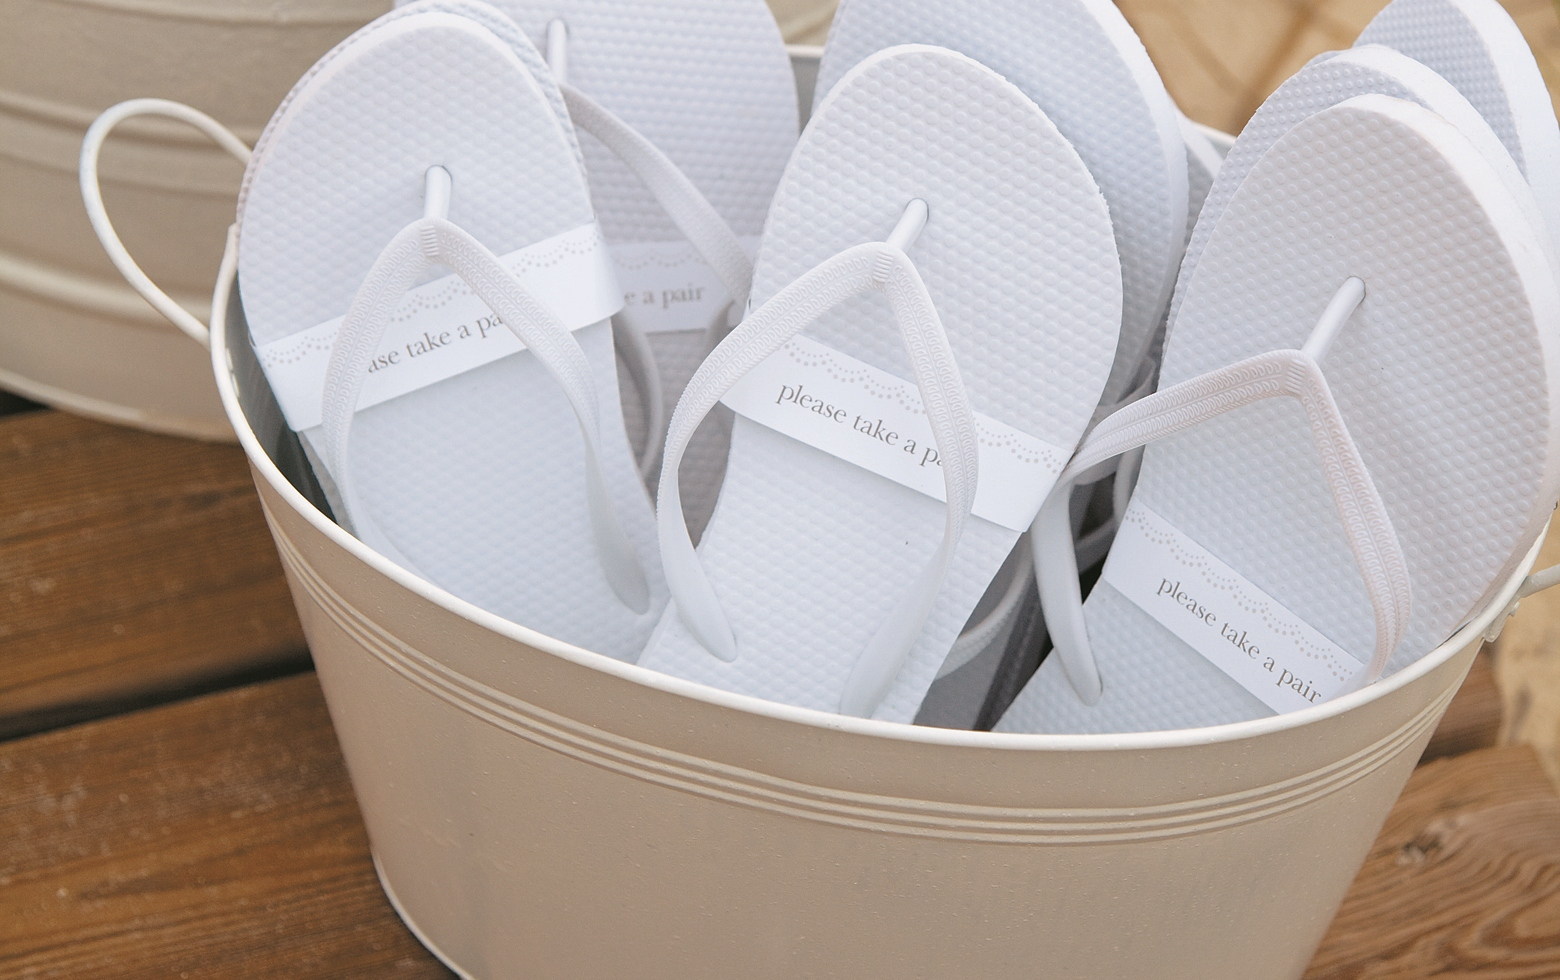 e0e44d993e103e All you need is a bucket and white flip flops! Talk to your wedding planner  about incorporating a flip flop station into your special day!